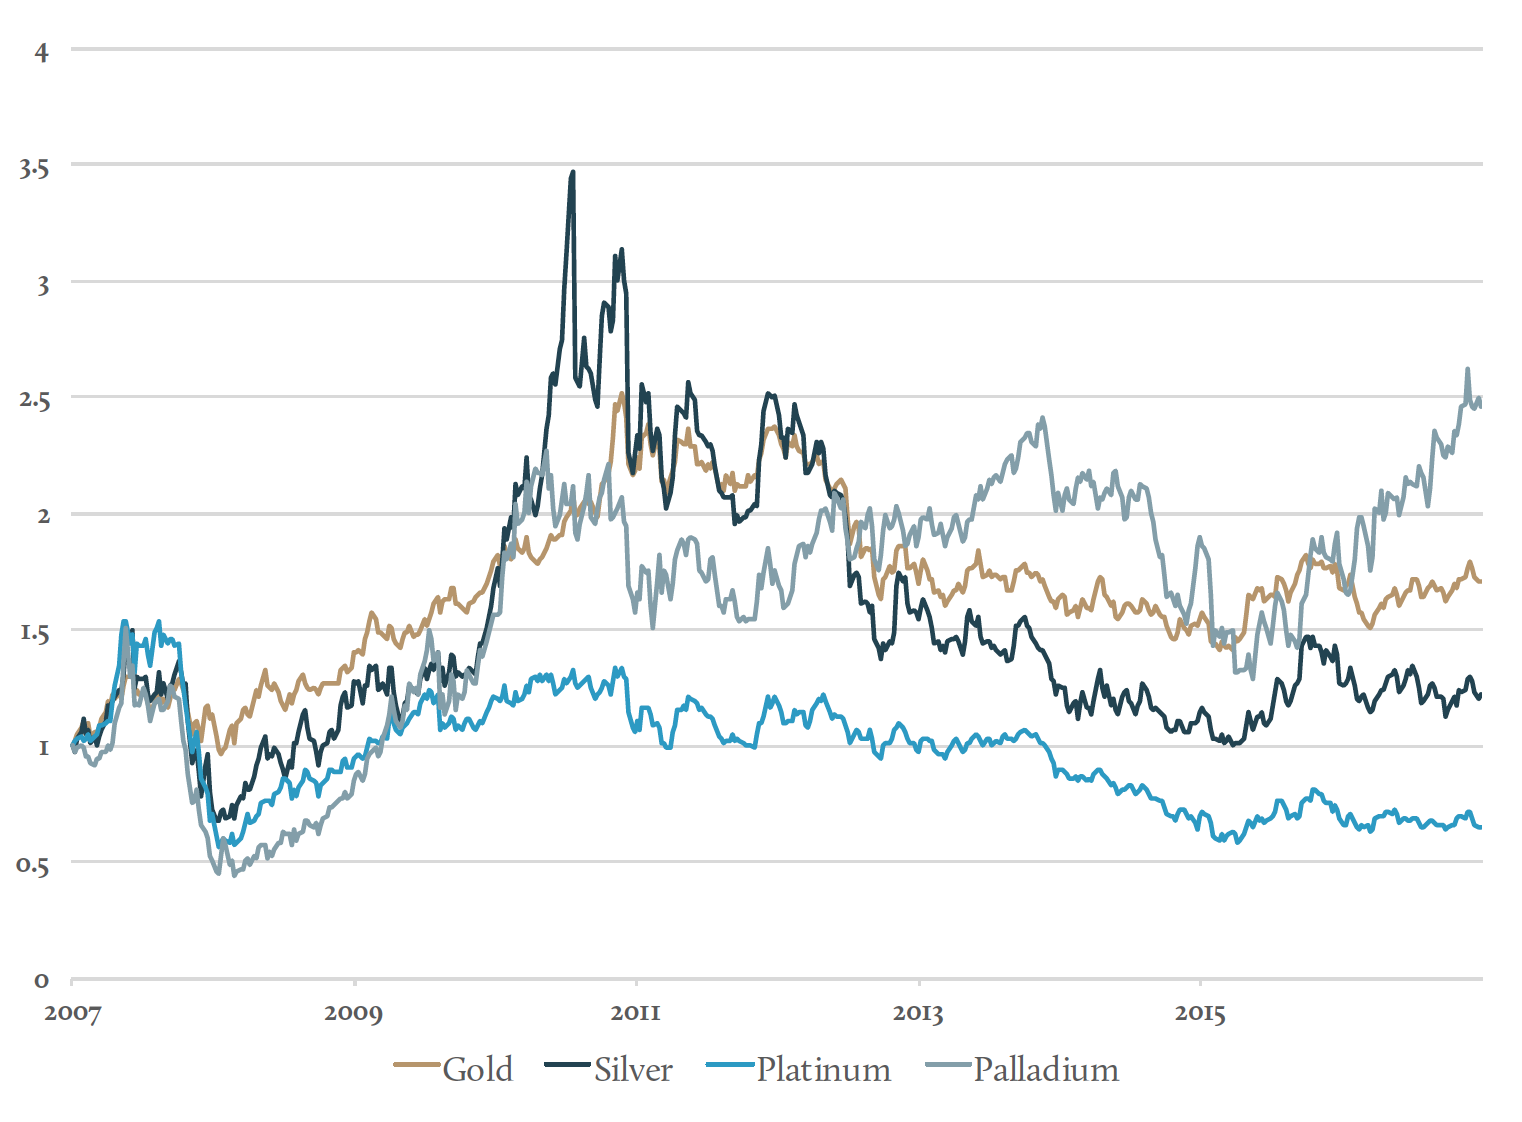 Long-term precious metals prices